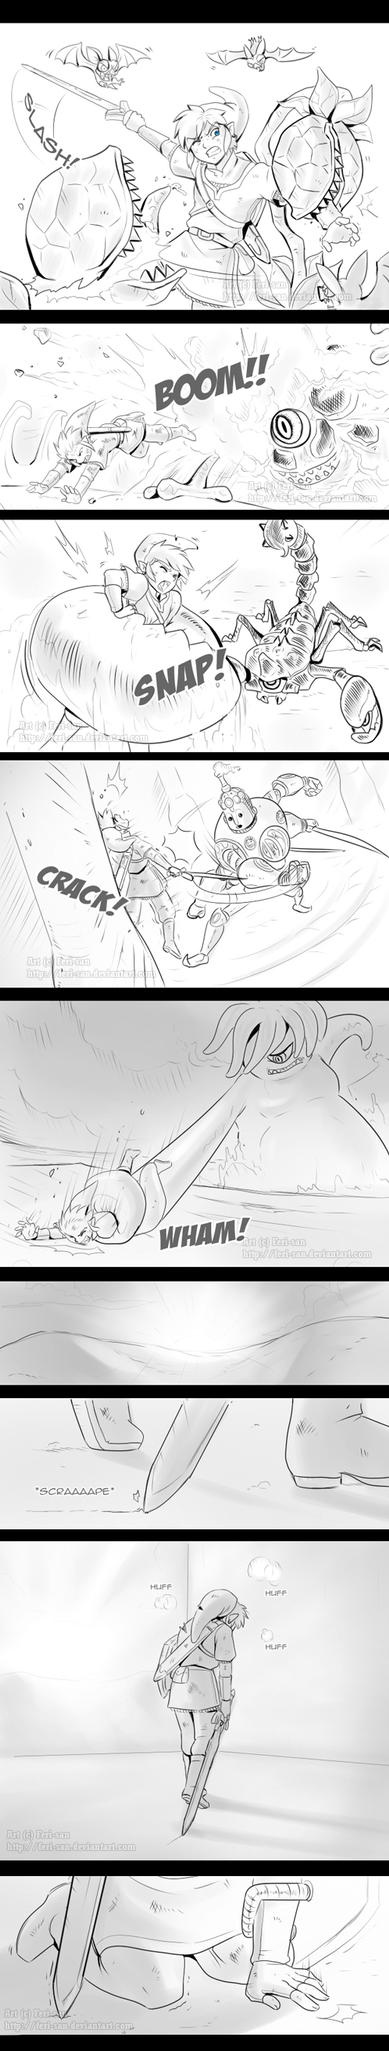 Skyward Sword - The Reason to Fight by Ferisae